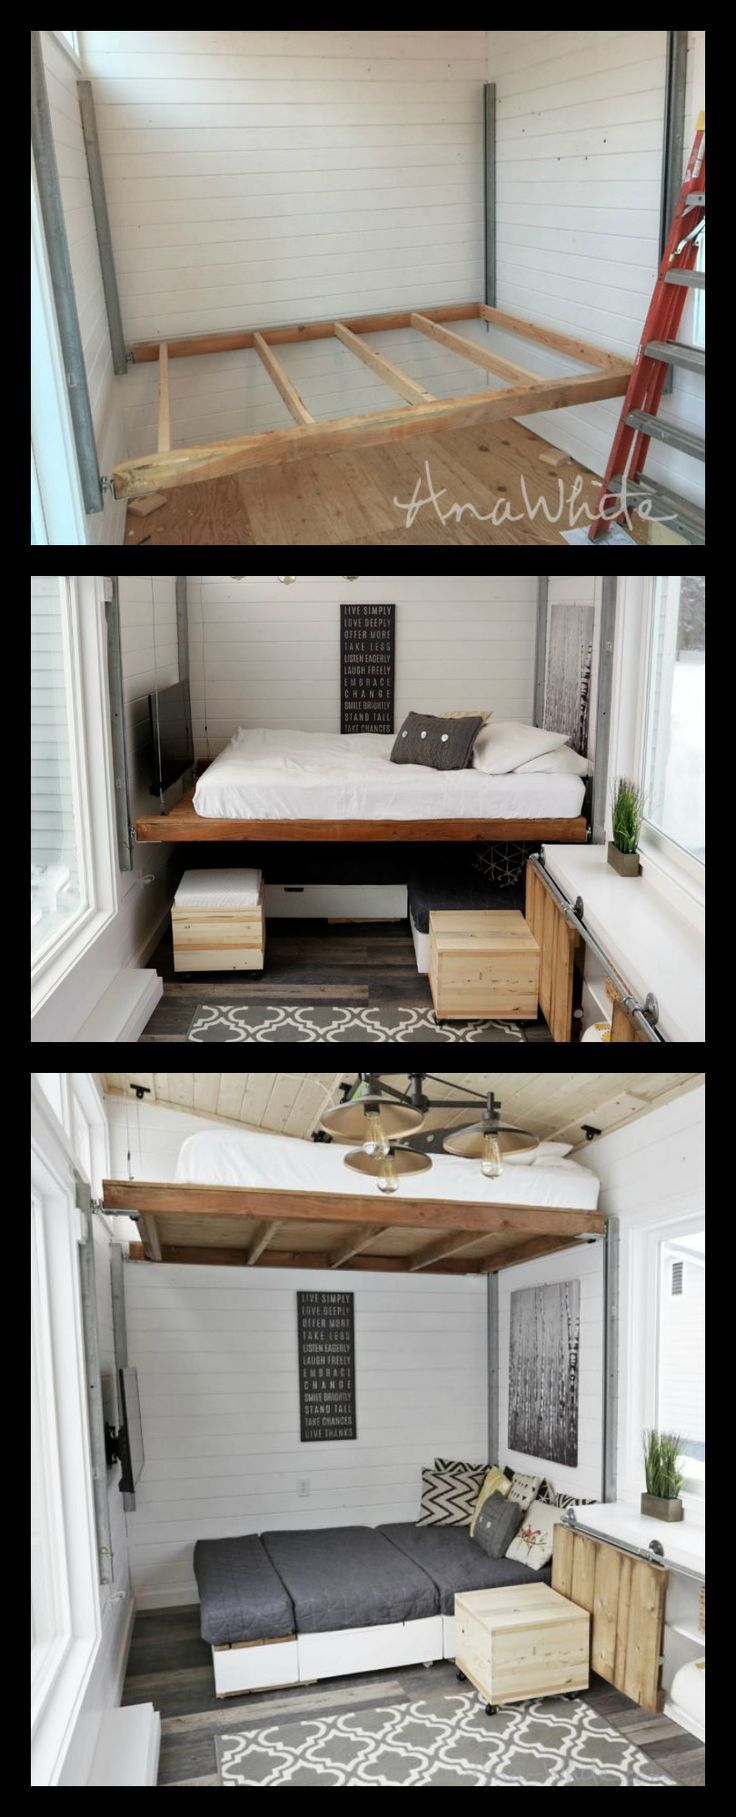 Diy Elevator Bed For Tiny House Small House Diy Diy House Projects Ana White Diy